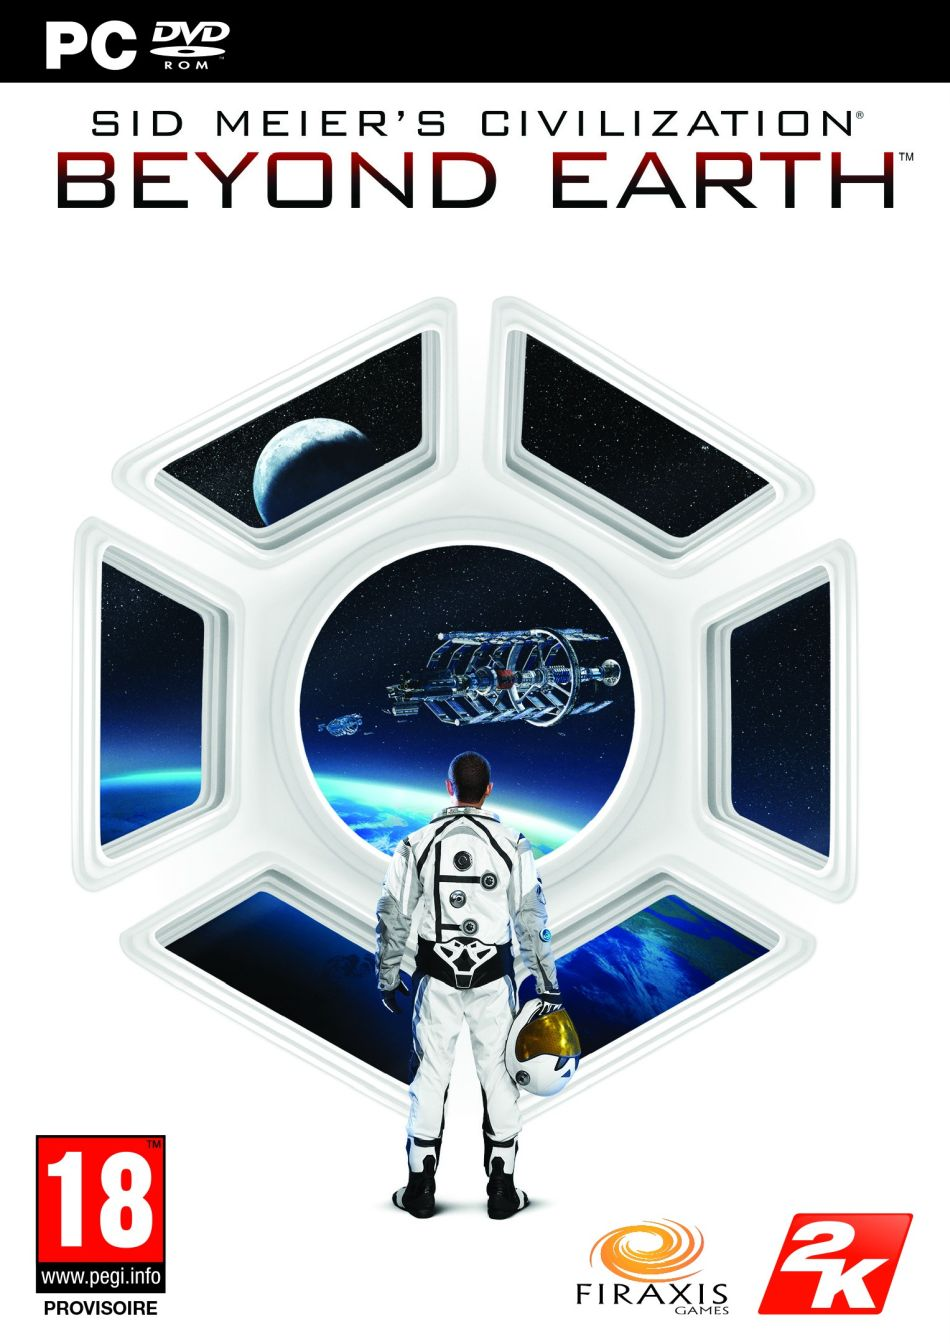 http://media.moddb.com/images/games/1/35/34889/Civilization-Beyond-Earth.jpg